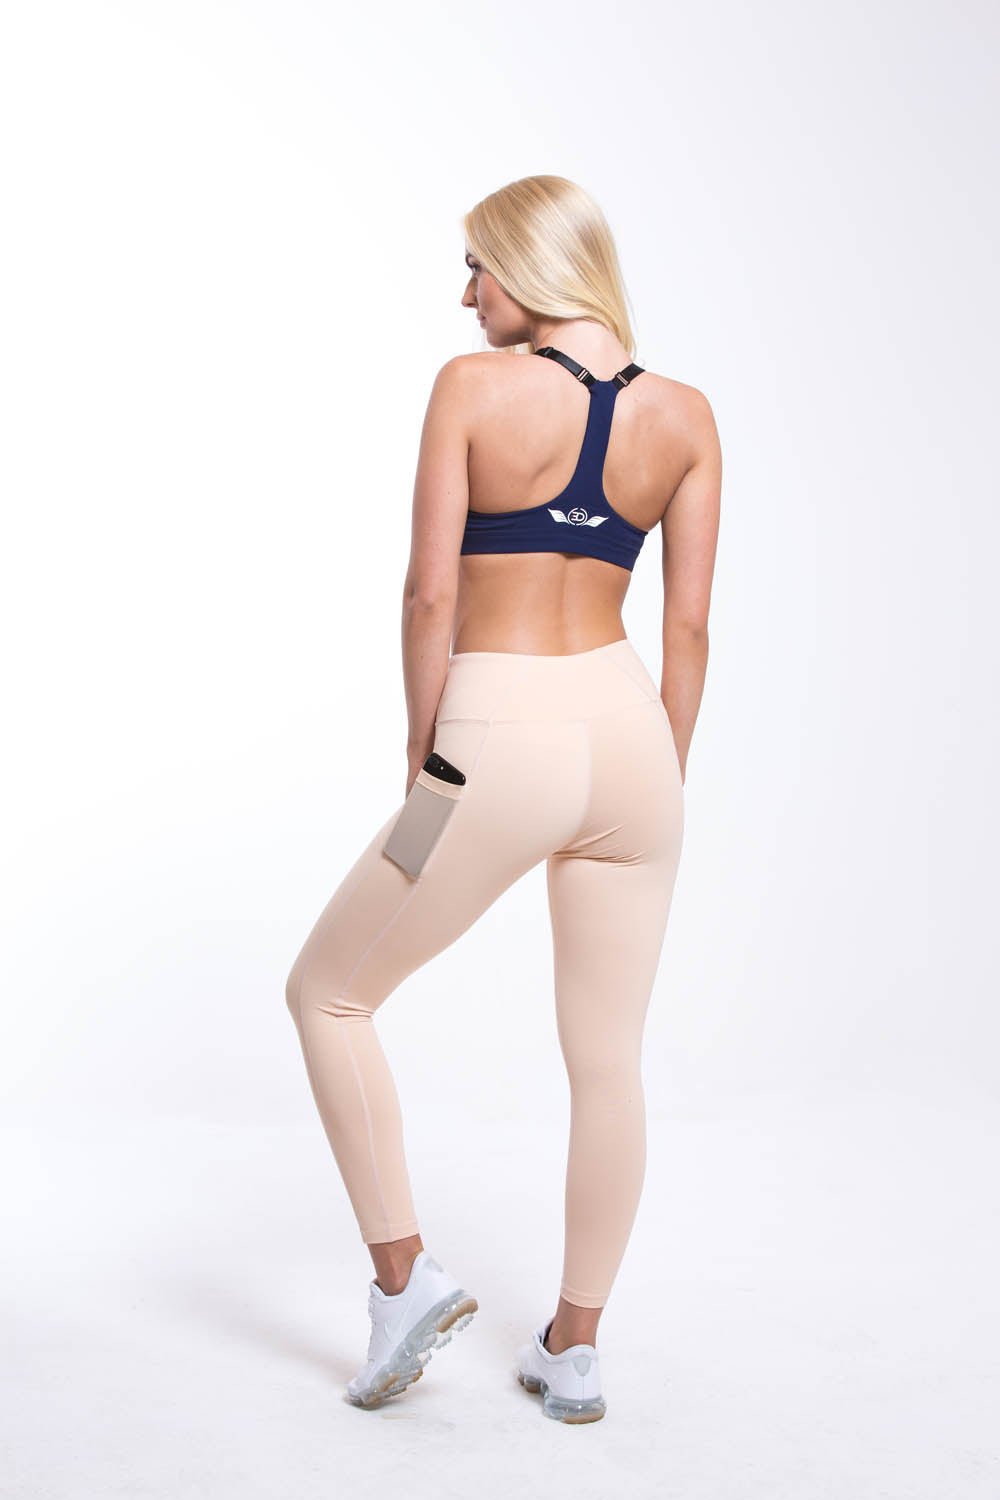 SIRIUS High Waist Leggings - Nude